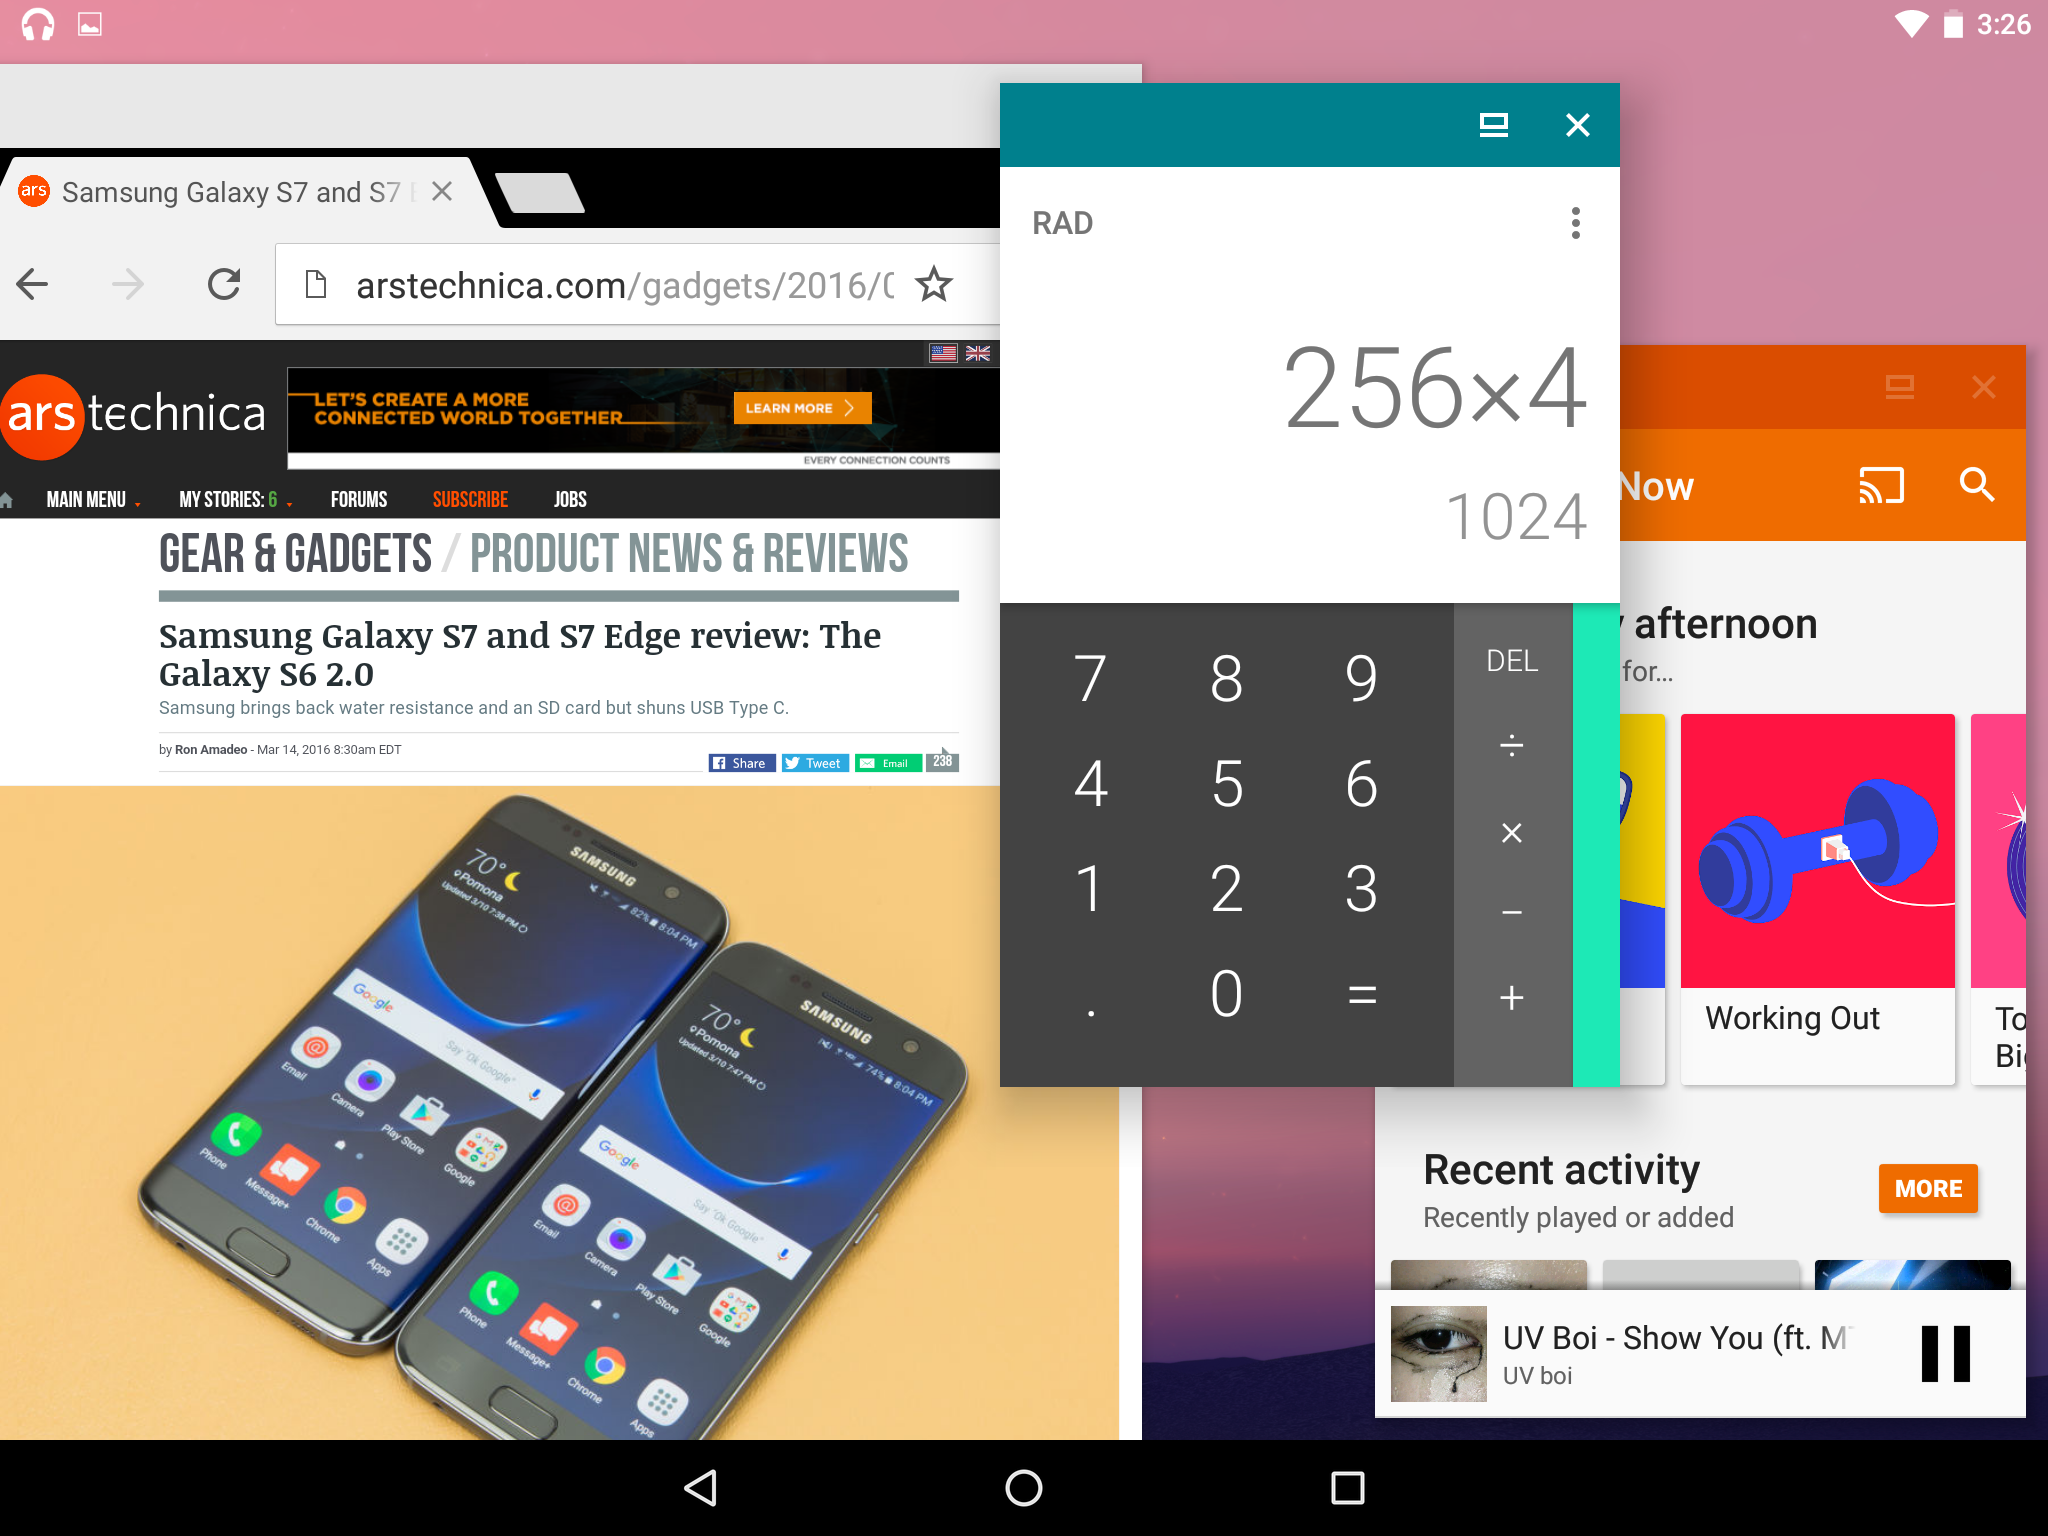 android n developer preview 2 running the hidden freeform window mode